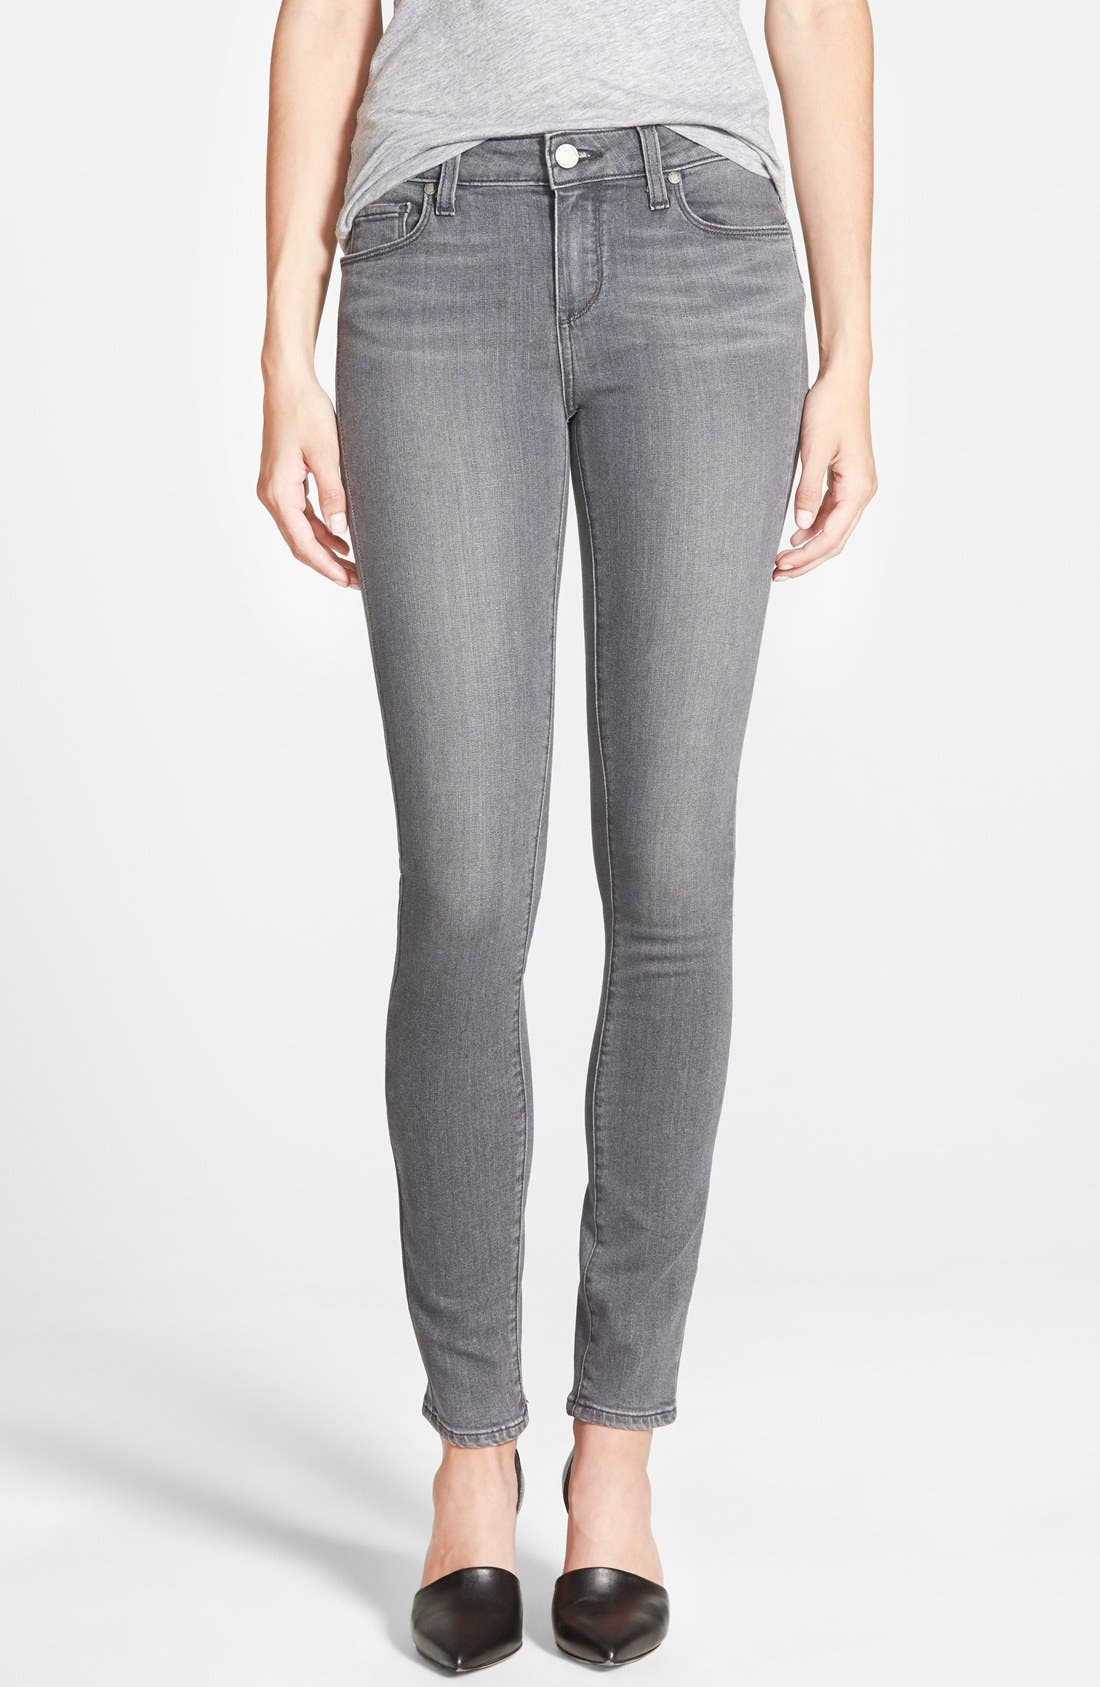 Alternate Image 1 Selected - PAIGE Transcend - Verdugo Ultra Skinny Jeans (Silvie)